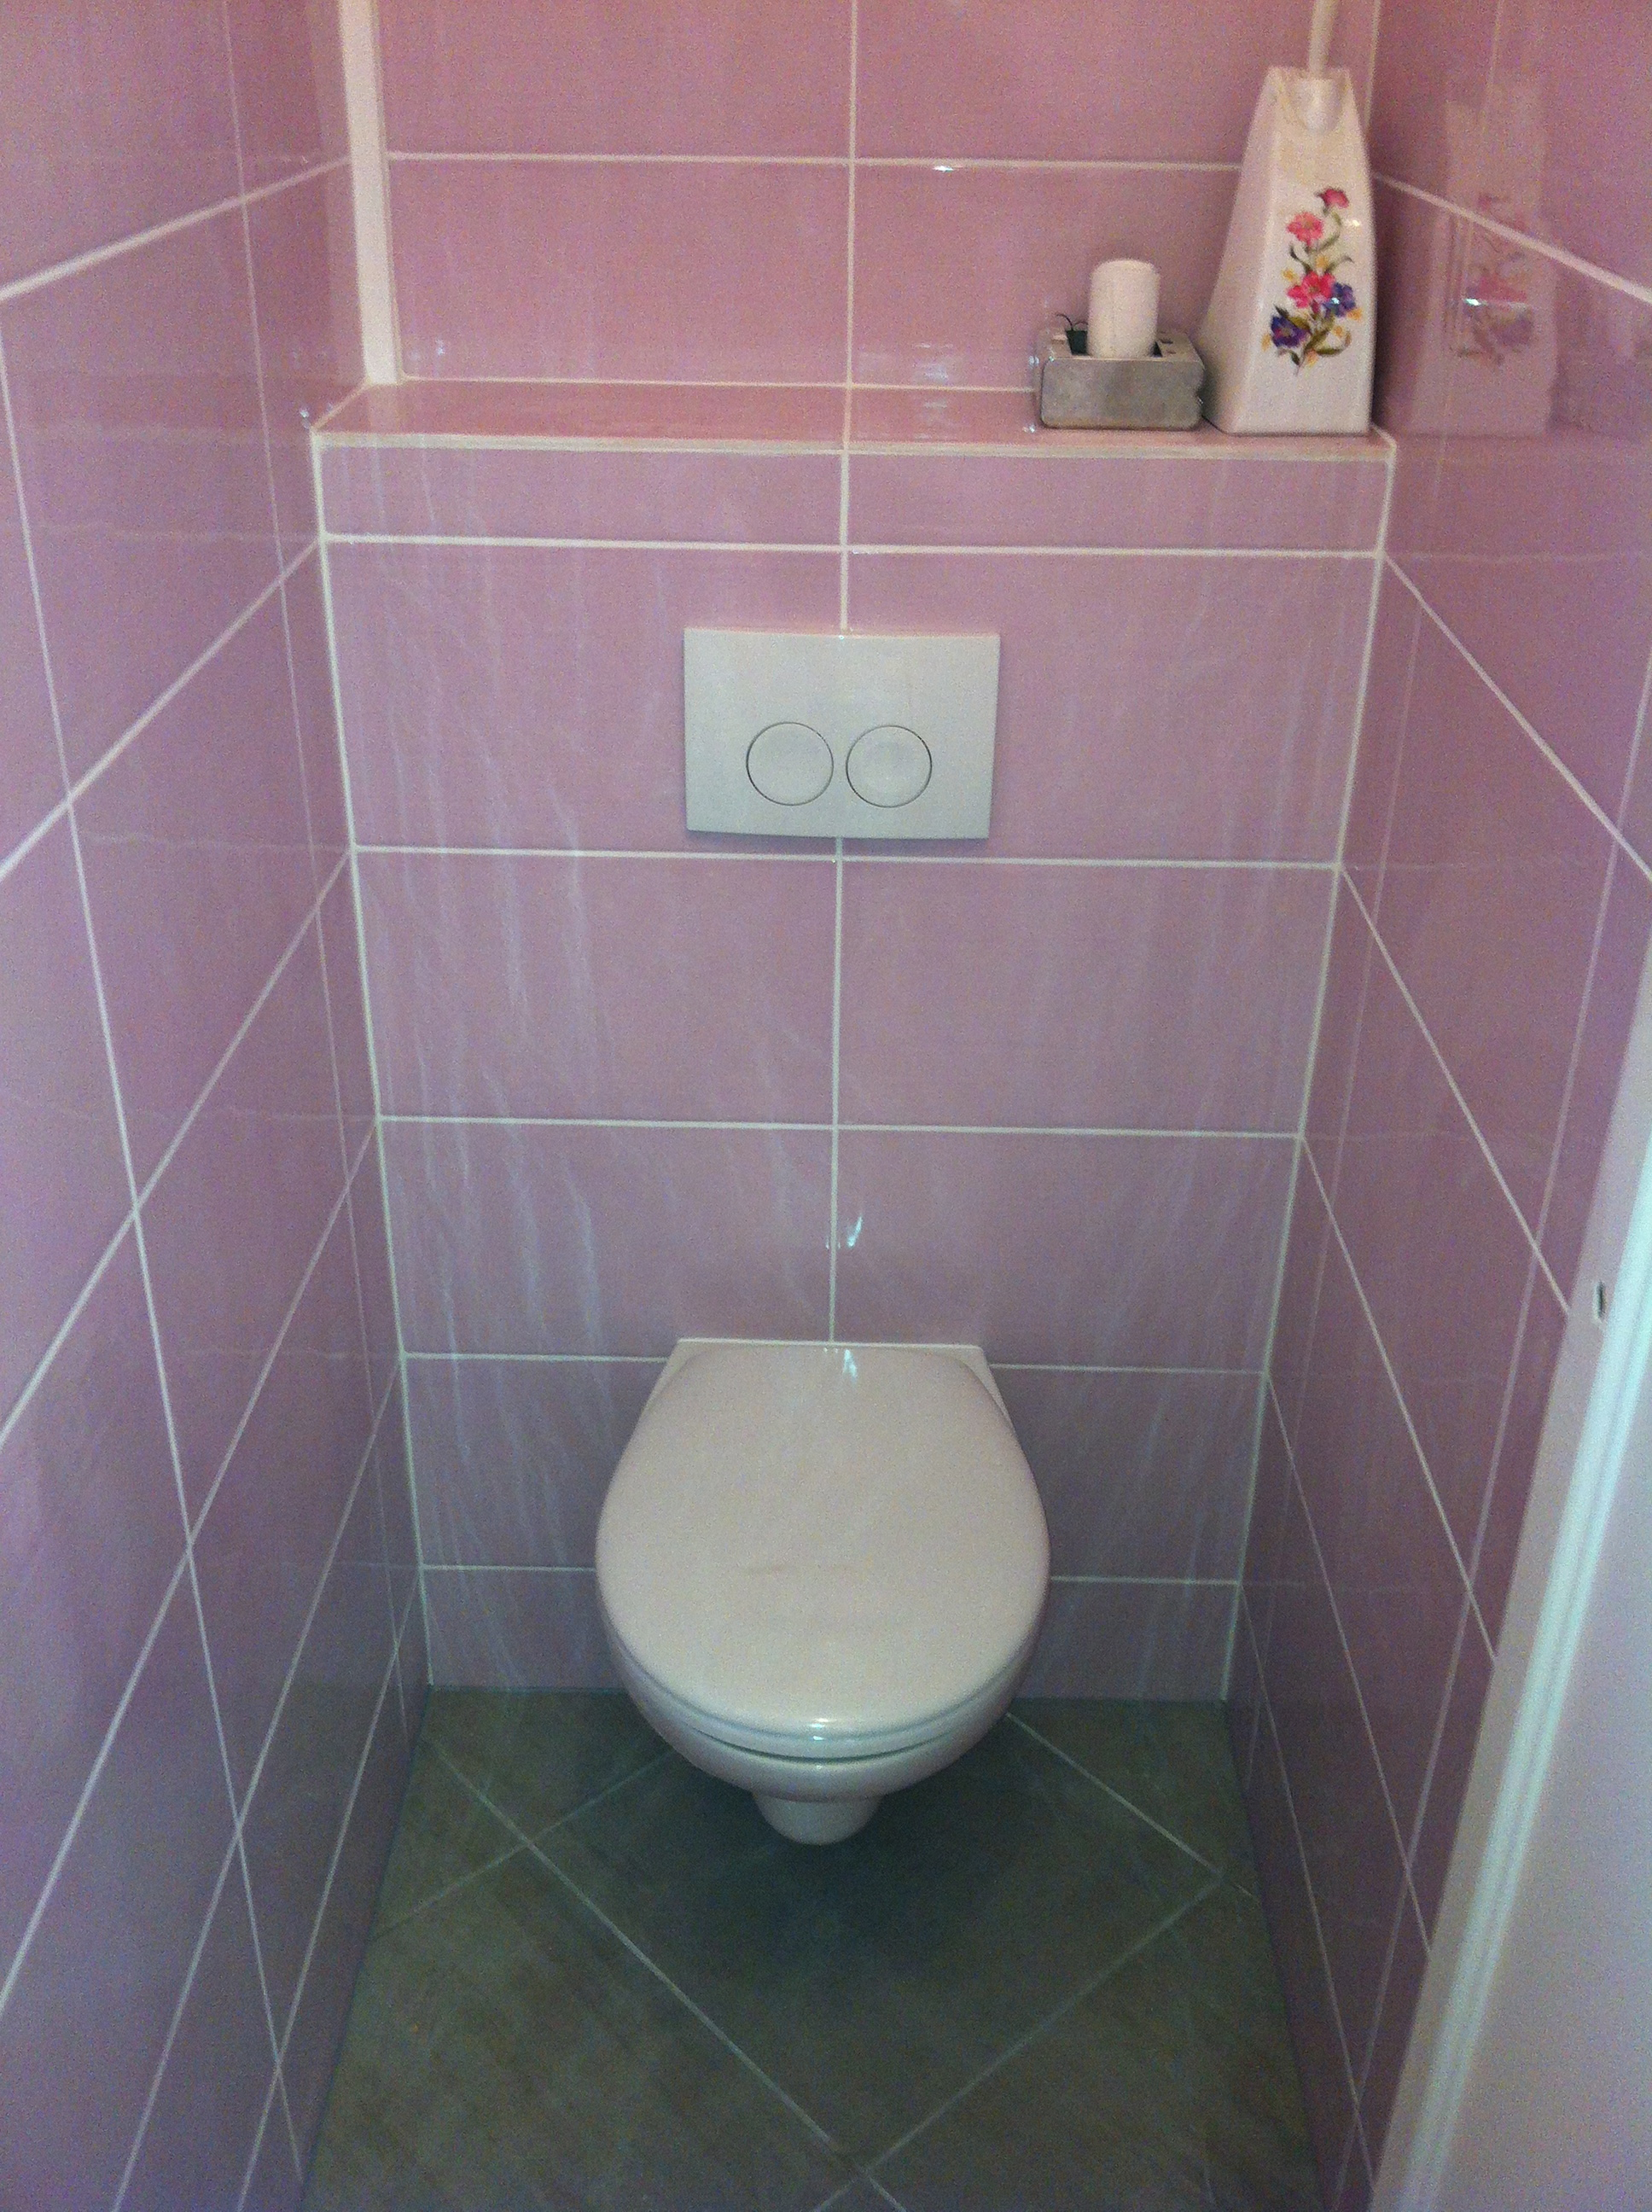 Wc suspendu wc encastr dream house - Peut on poser du carrelage sur un autre carrelage ...